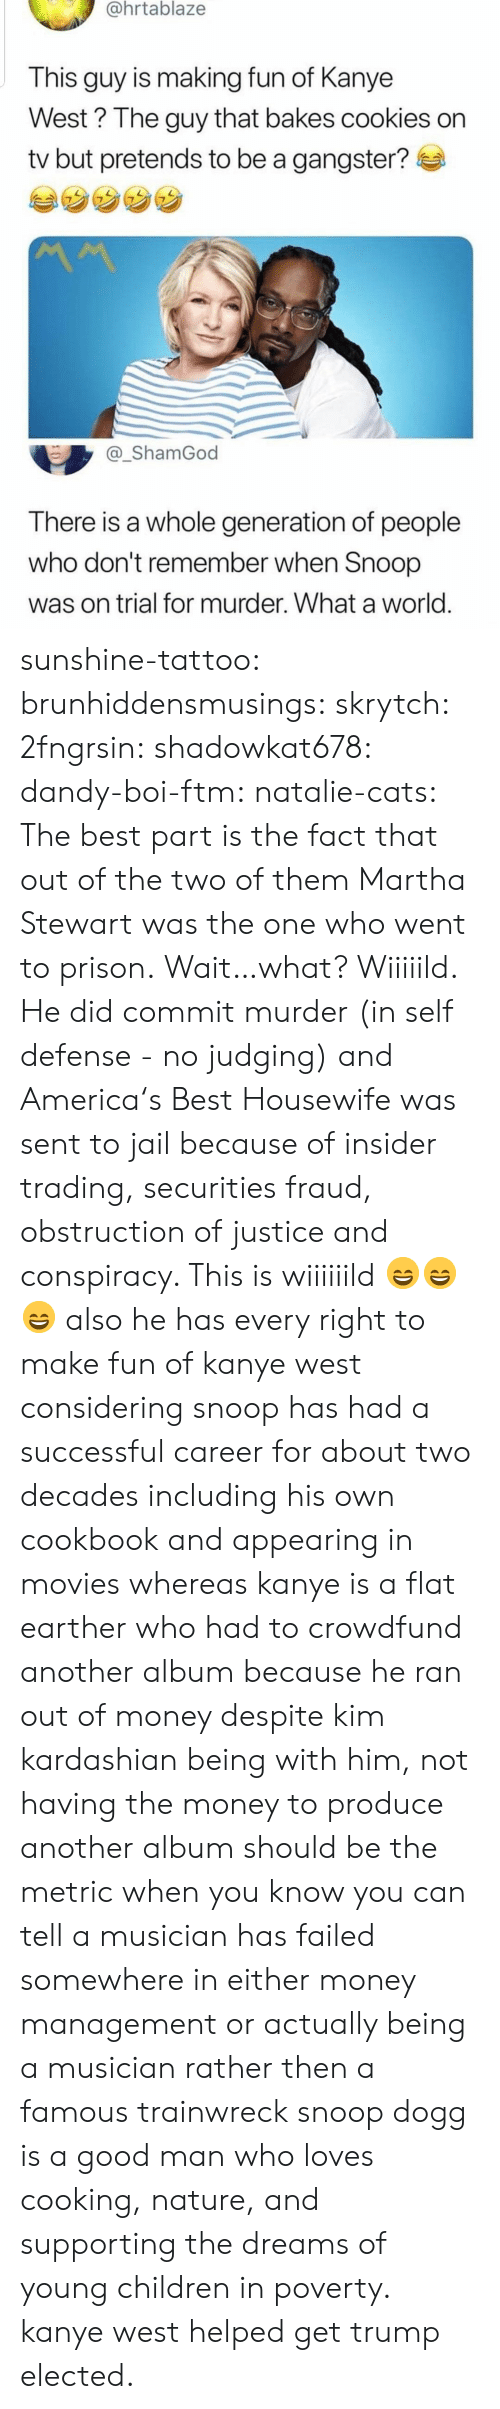 Kanye: @hrtablaze  This guy is making fun of Kanye  West? The guy that bakes cookies on  tv but pretends to be a gangster?  _ShamGod  There is a whole generation of people  who don't remember when Snoop  was on trial for murder. What a world sunshine-tattoo: brunhiddensmusings:  skrytch:  2fngrsin:  shadowkat678:  dandy-boi-ftm:   natalie-cats:   The best part is the fact that out of the two of them Martha Stewart was the one who went to prison.   Wait…what?   Wiiiiild. He did commit murder (in self defense - no judging) and America's Best Housewife was sent to jail because of insider trading, securities fraud, obstruction of justice and conspiracy. This is wiiiiiild 😄😄😄    also he has every right to make fun of kanye west considering snoop has had a successful career for about two decades including his own cookbook and appearing in movies whereas kanye is a flat earther who had to crowdfund another album because he ran out of money despite kim kardashian being with him, not having the money to produce another album should be the metric when you know you can tell a musician has failed somewhere in either money management or actually being a musician rather then a famous trainwreck   snoop dogg is a good man who loves cooking, nature, and supporting the dreams of young children in poverty. kanye west helped get trump elected.